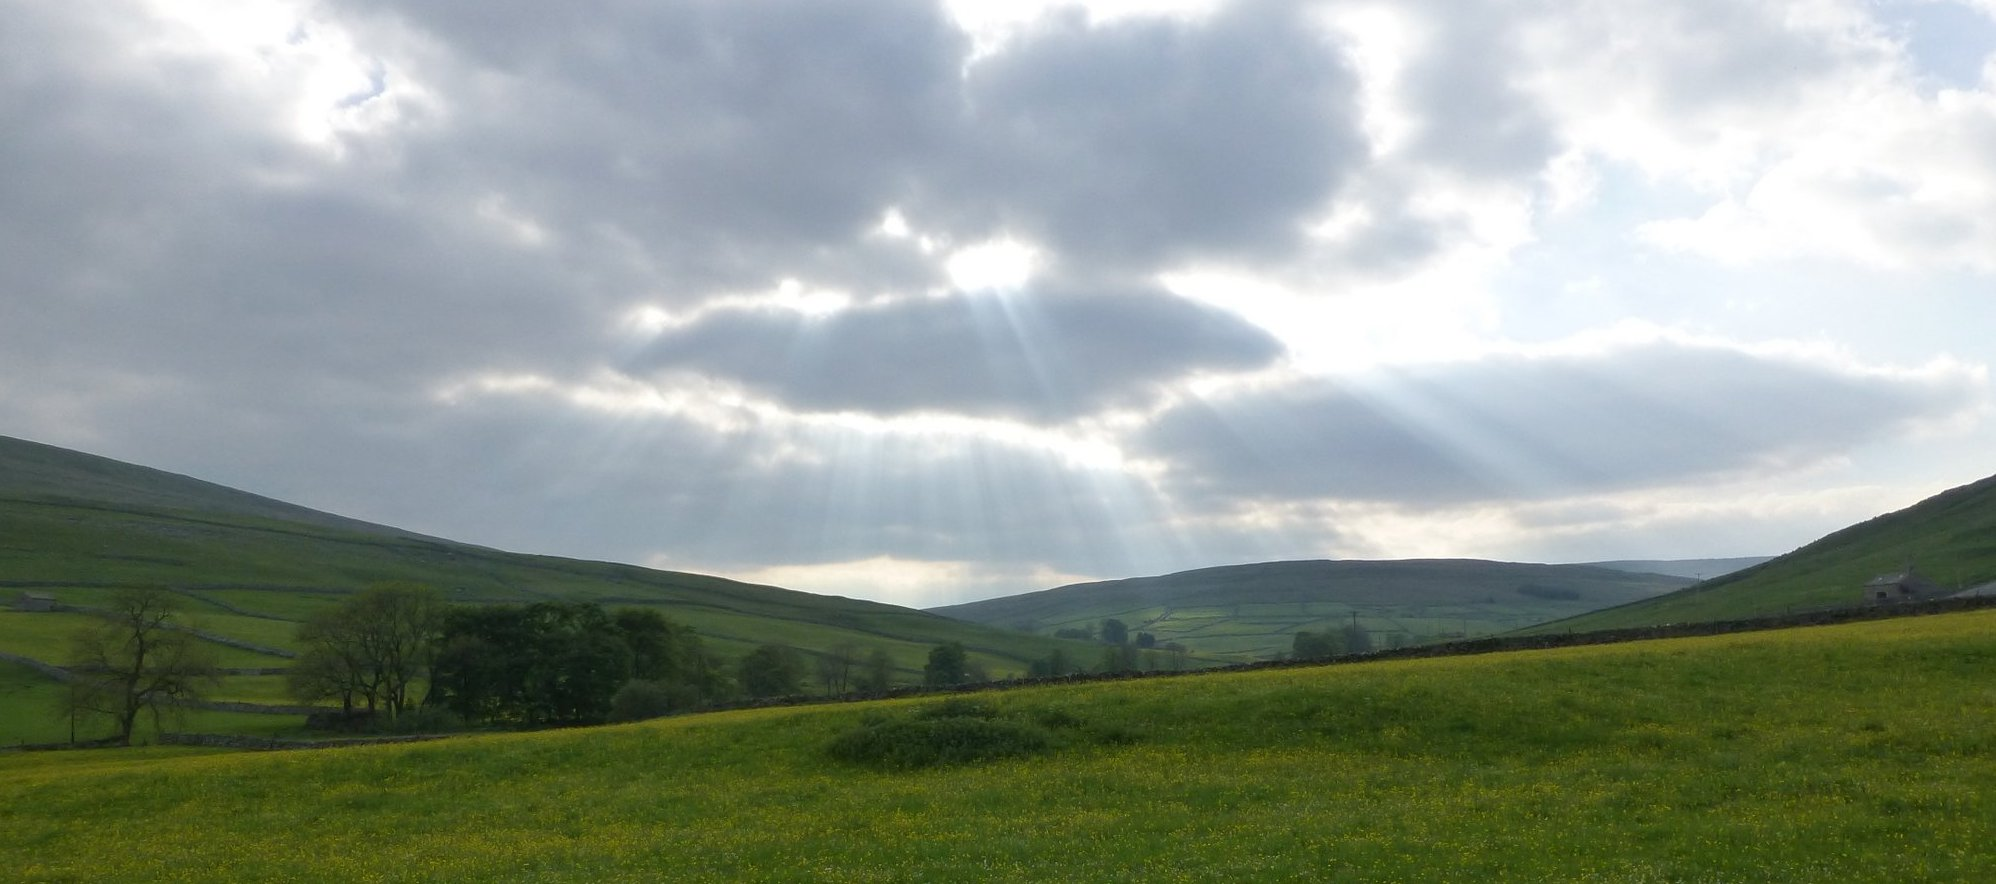 Walking out of Littondale